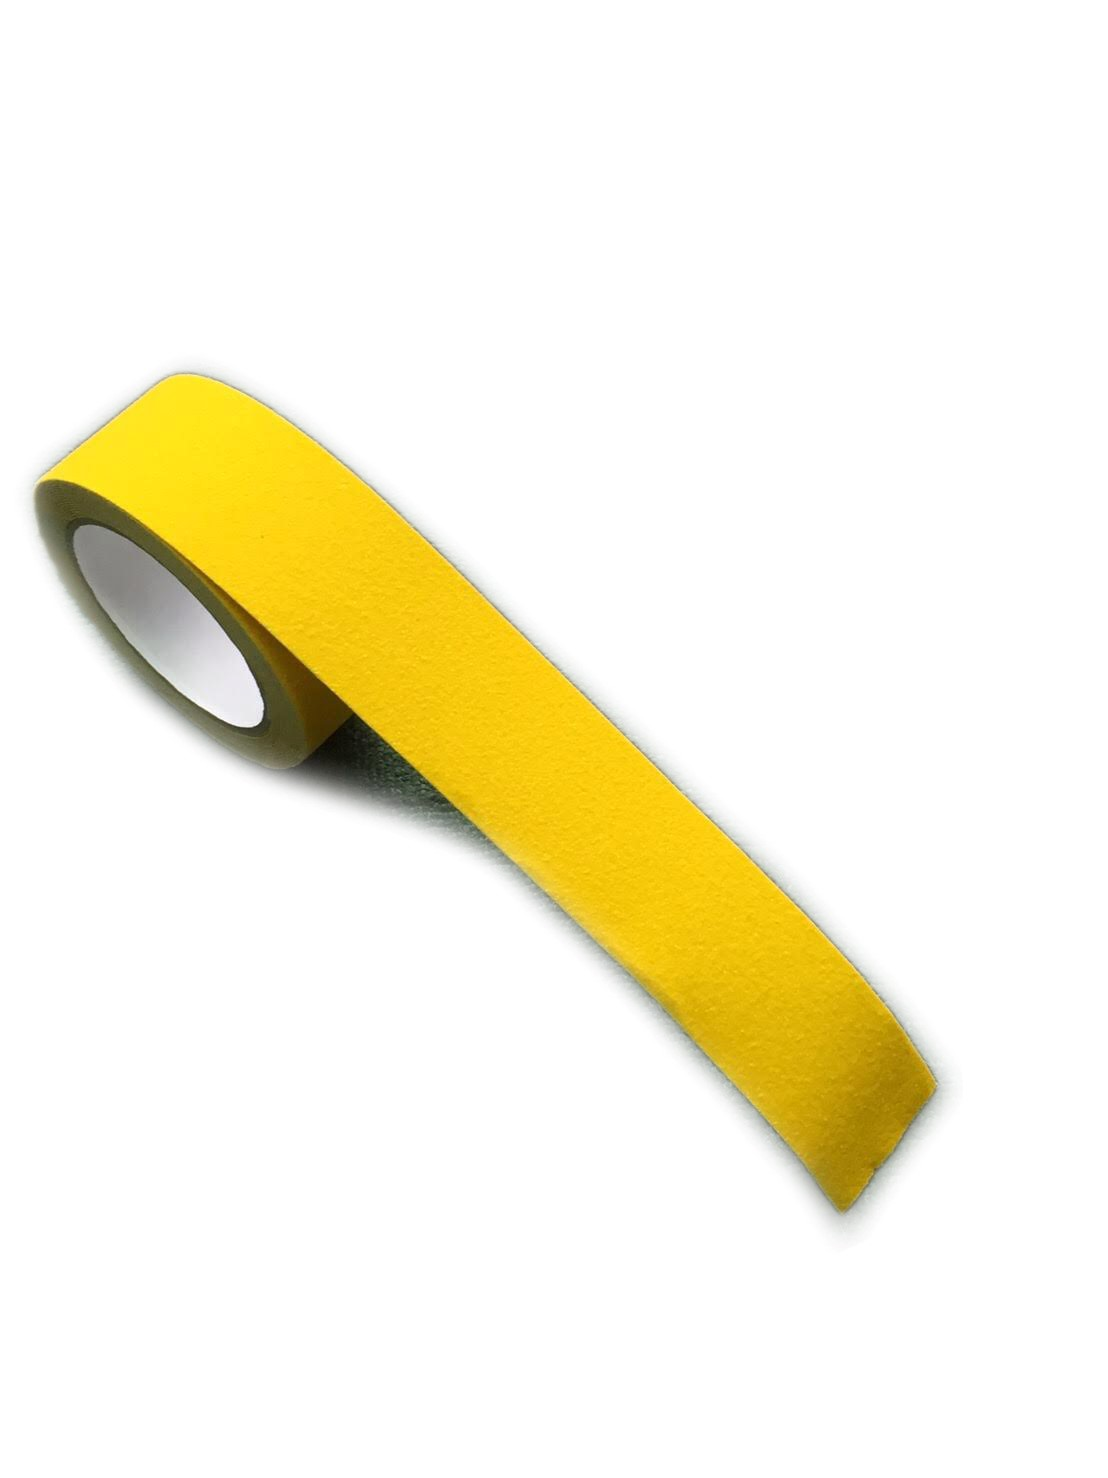 Conformable Anti-Slip Tape - (aluminium foil backing, for uneven surfaces)